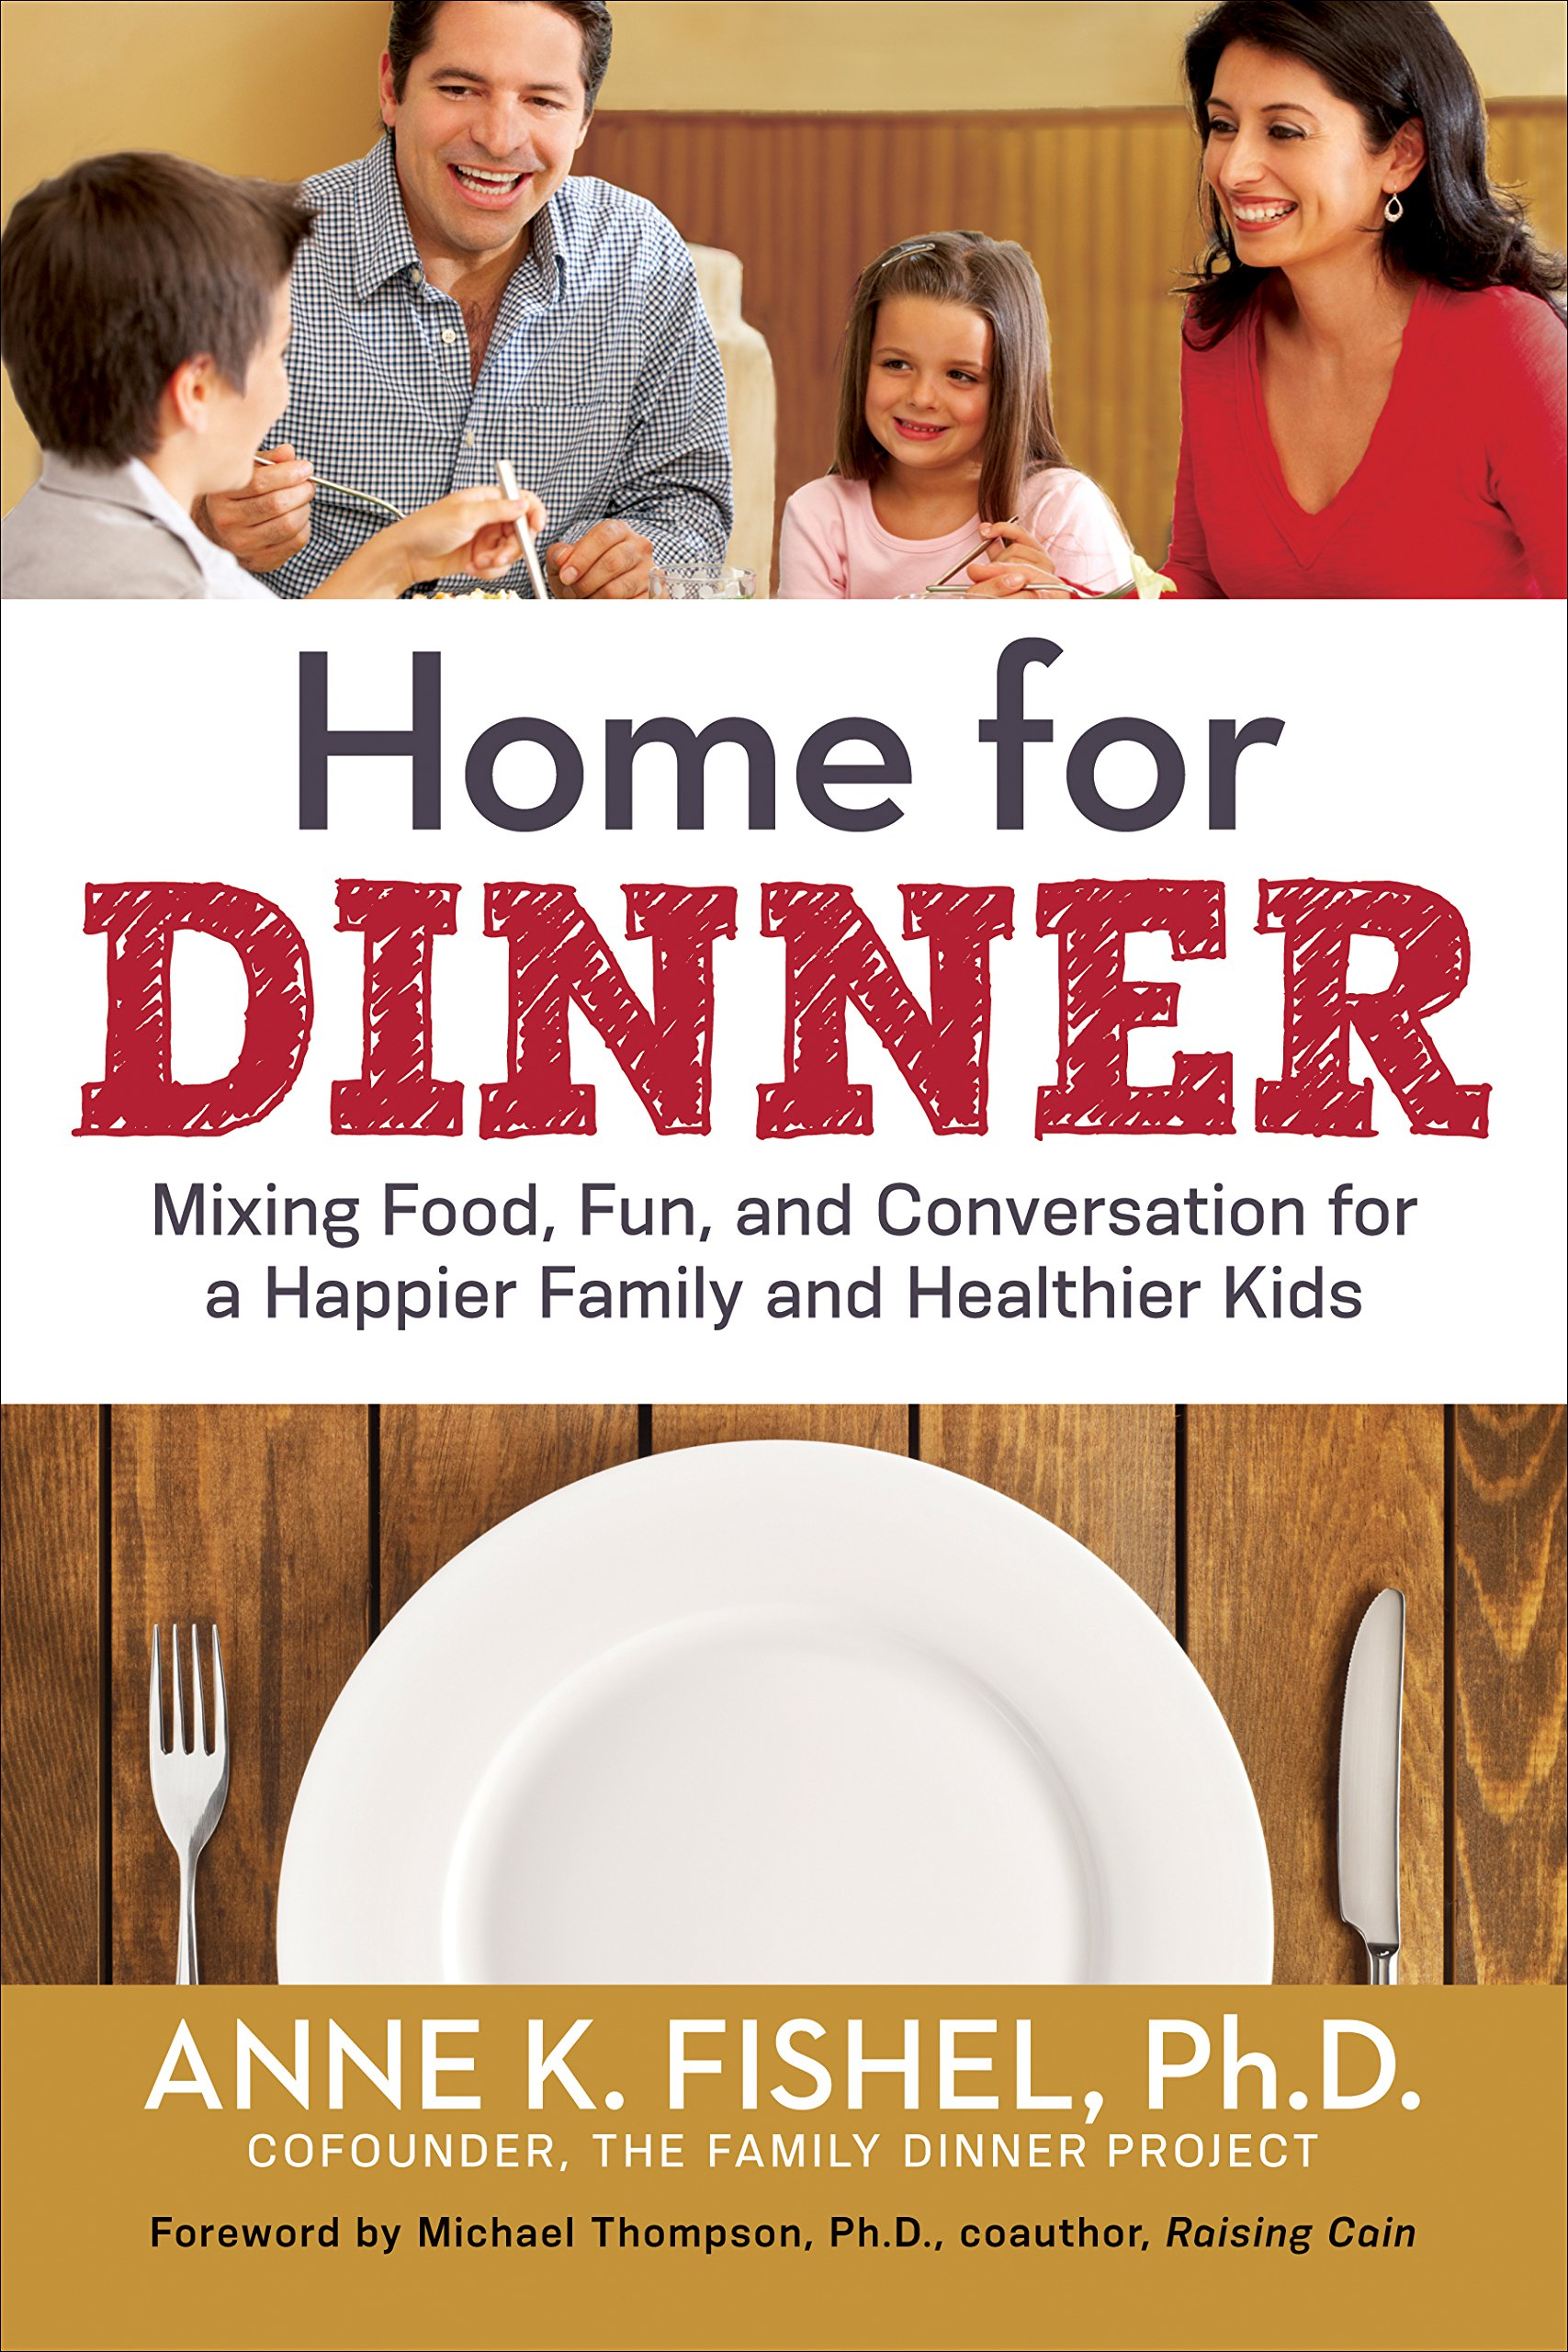 Home Dinner Conversation Happier Healthier product image